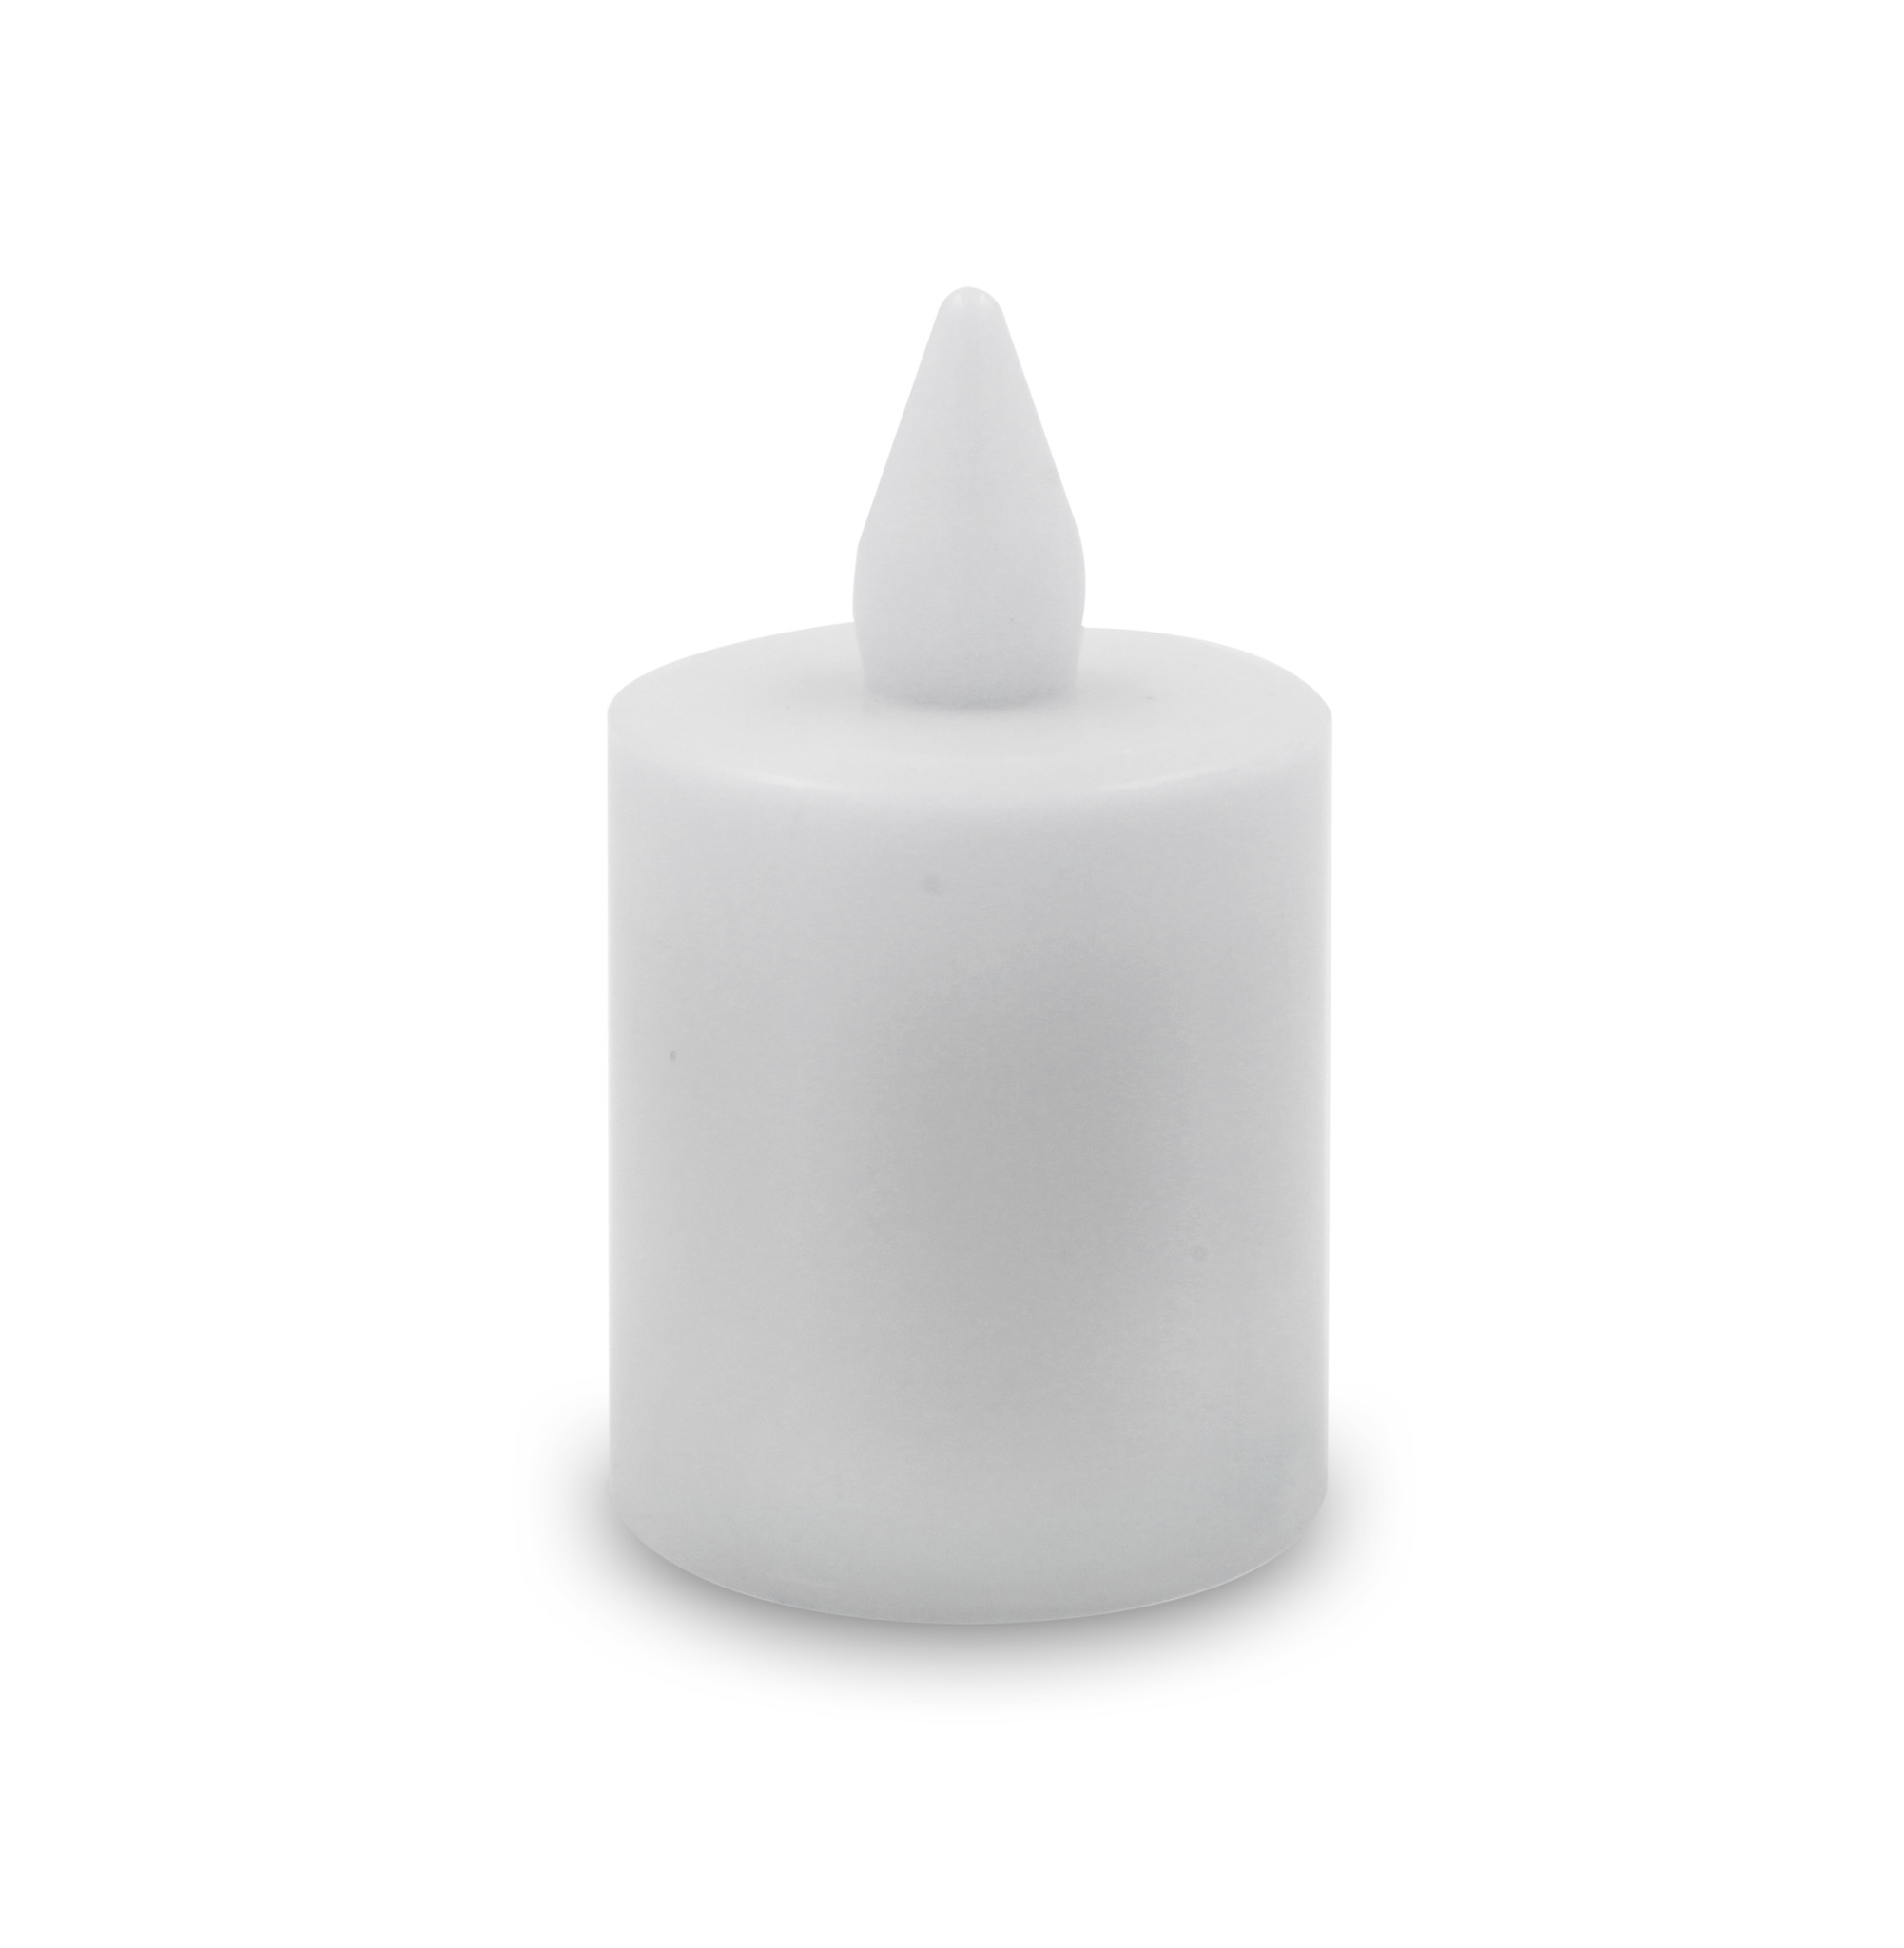 p-977-candle_x_8a931775-07fe-4070-a132-645398a5c738